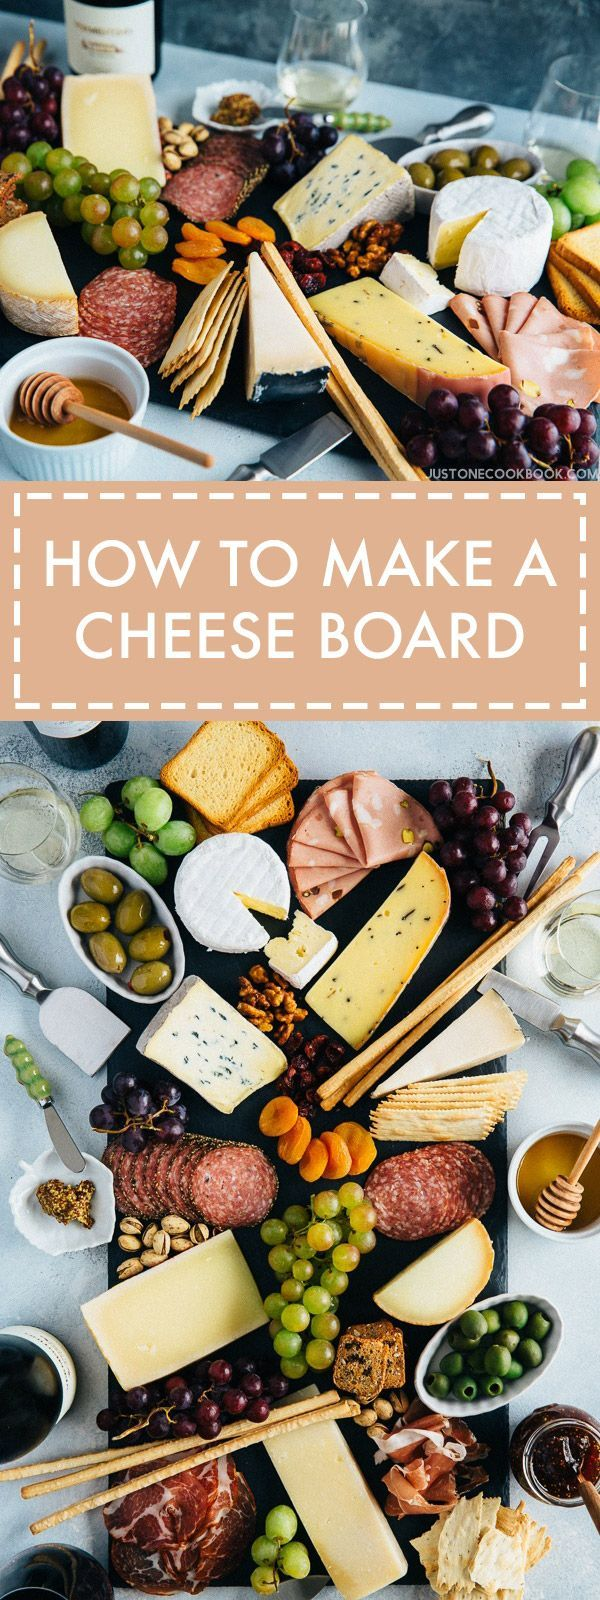 Making a beautiful cheese board to entertain guests and friends! Here are some quick guides on how to create a well-balanced cheese board!